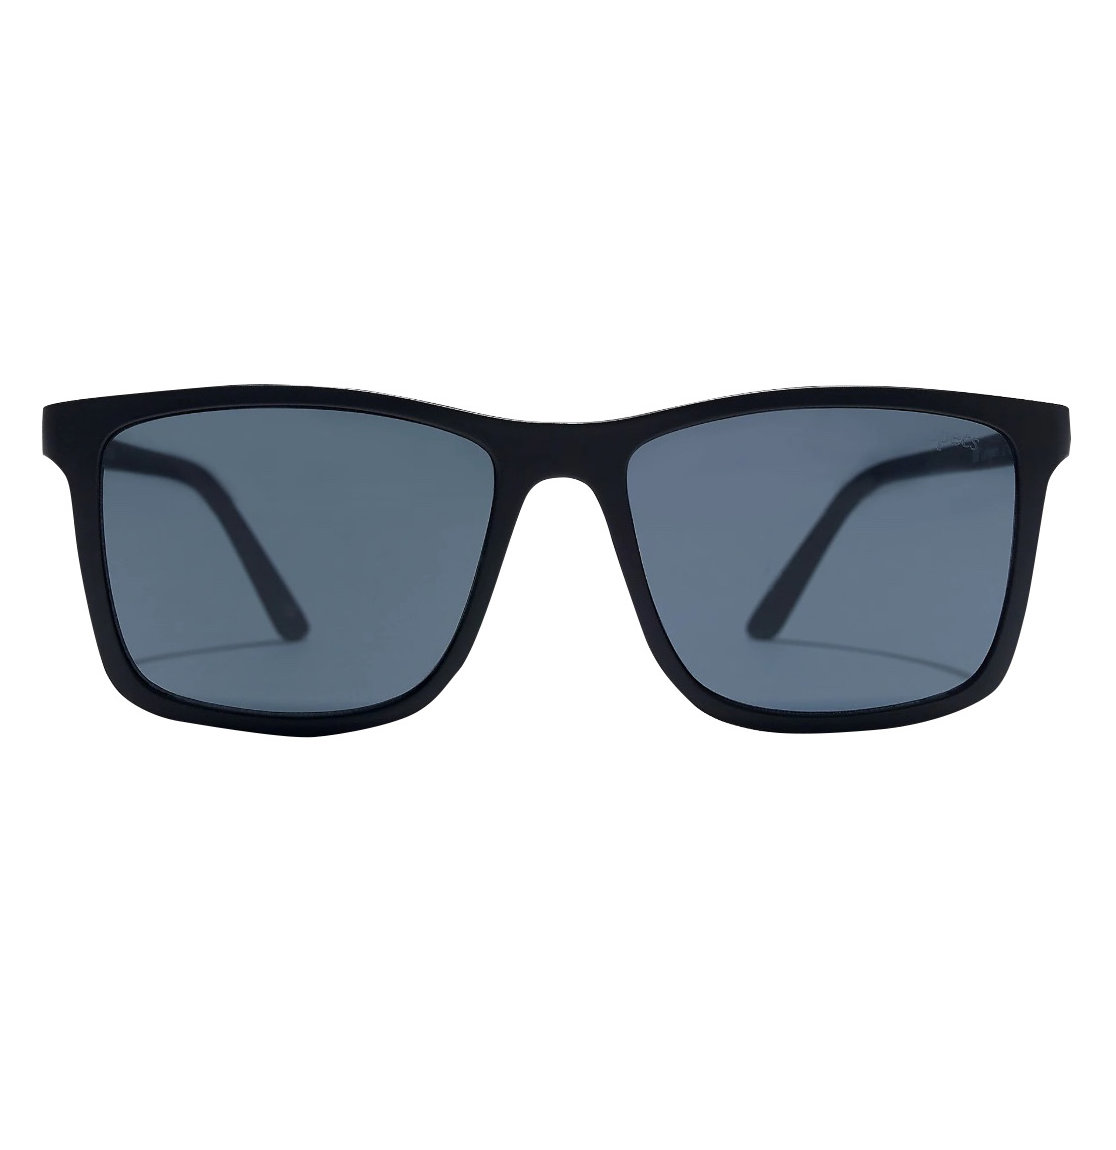 Gift Ideas for Men: Le Specs Sunglasses